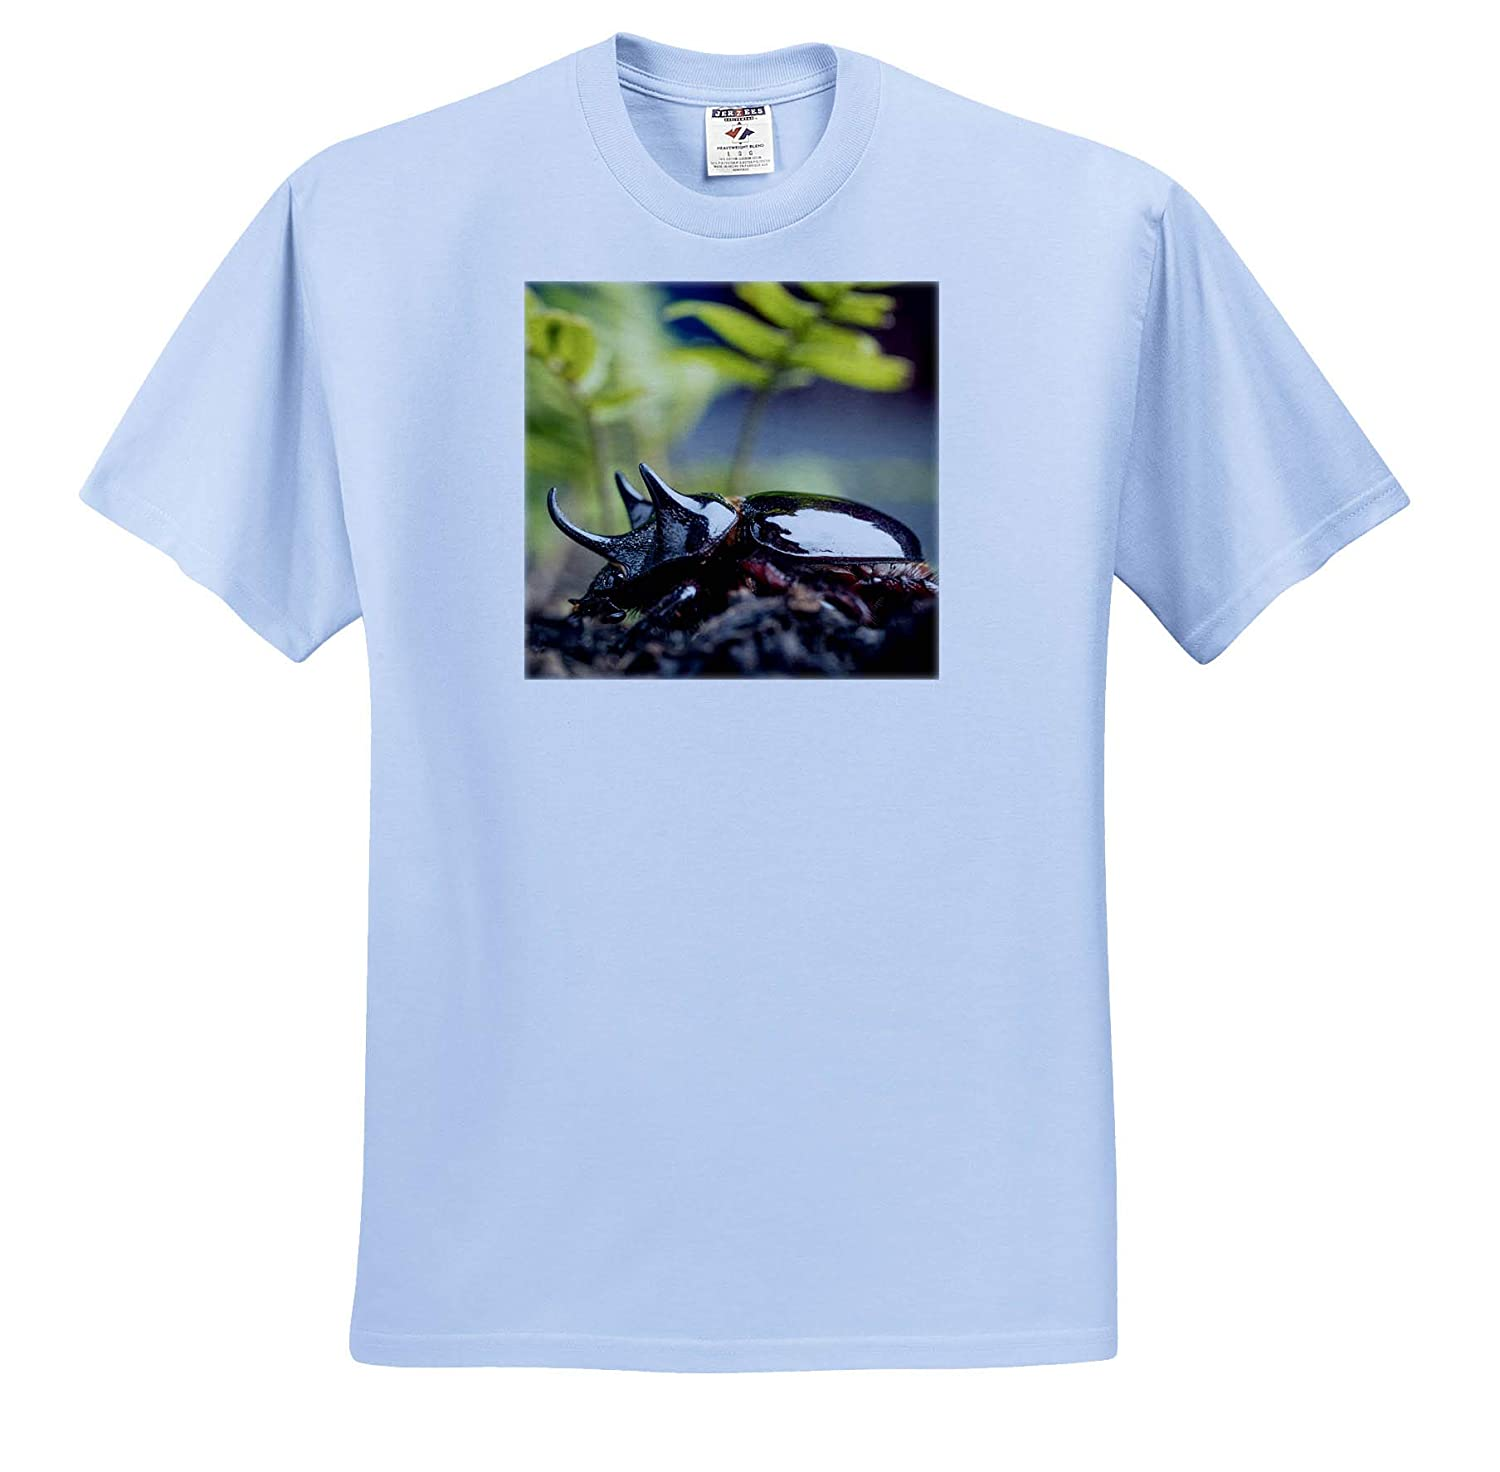 Insects Major Ox or Hercules Beetle Showing Horns Elephant - Adult T-Shirt XL ts/_314774 3dRose Danita Delimont